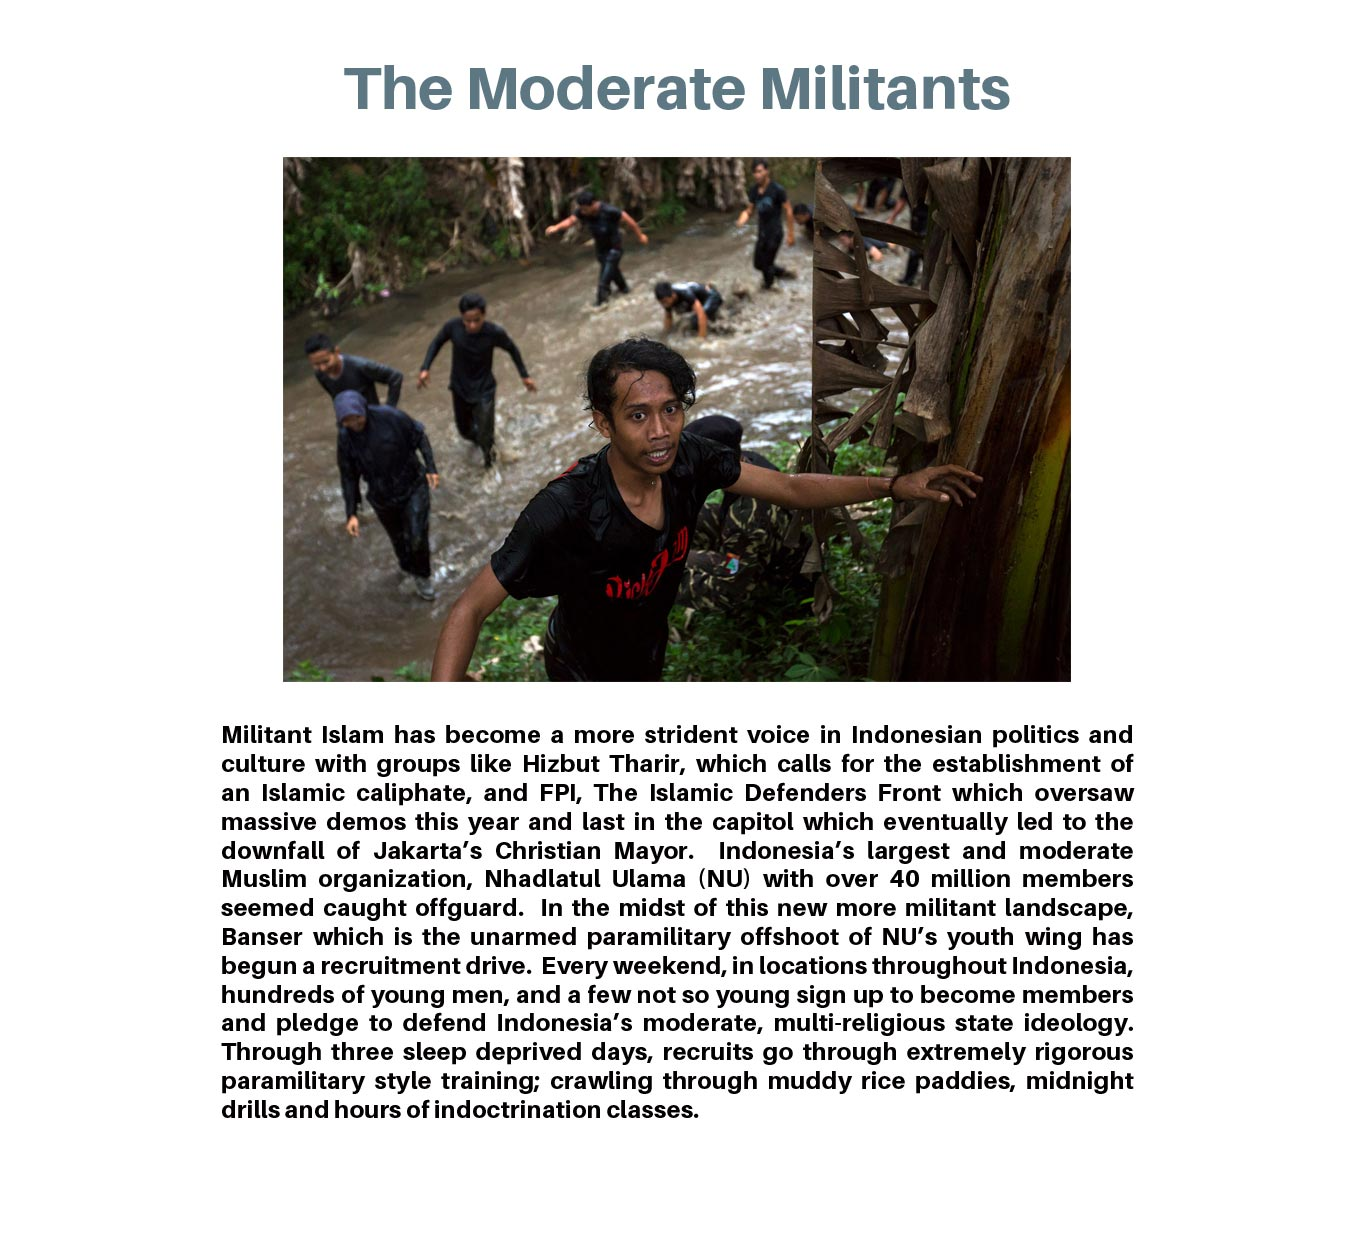 MilitantModeratesTh04